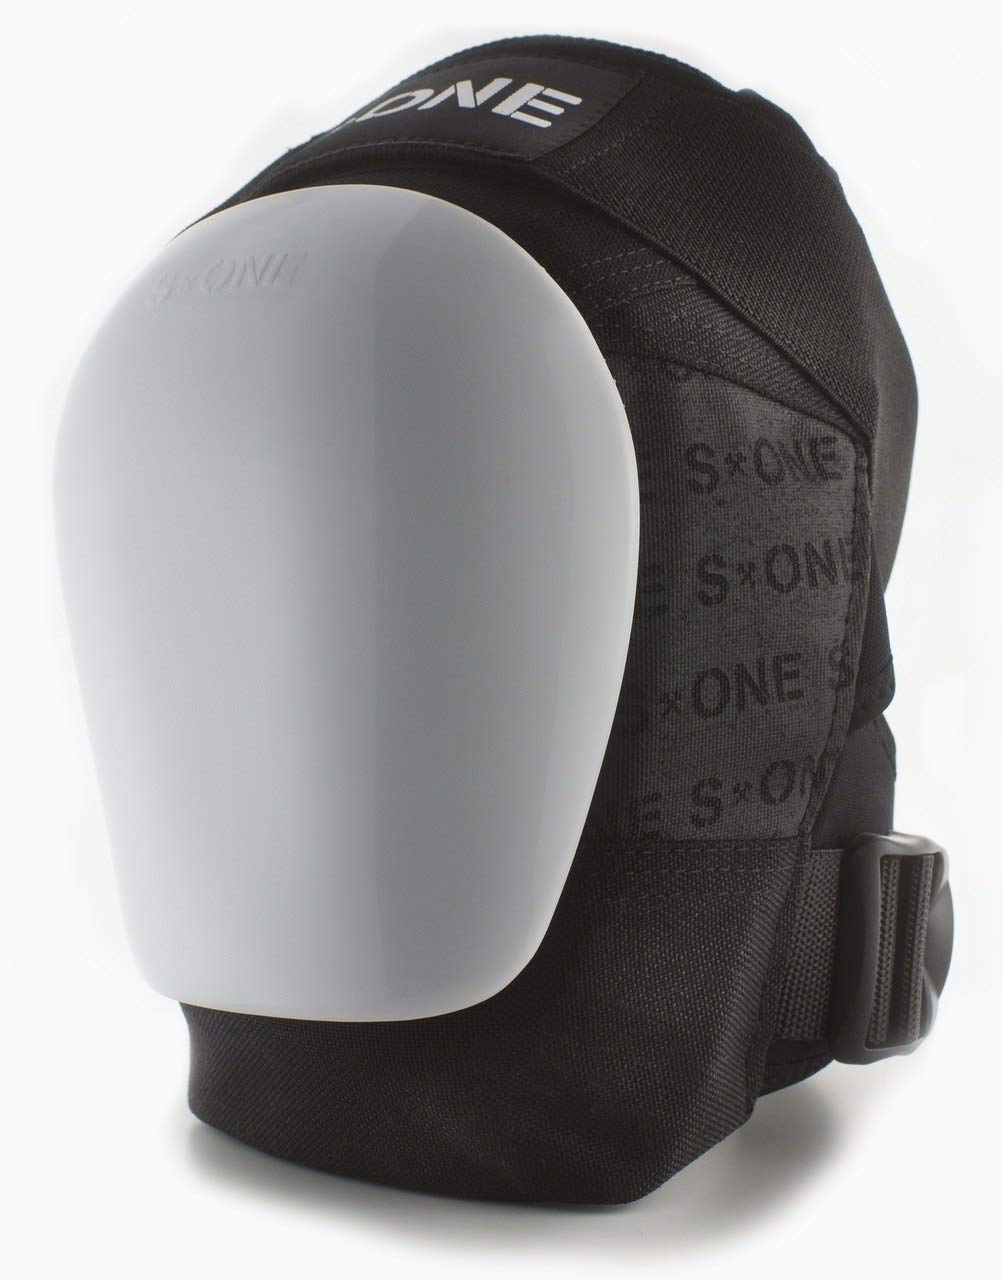 S-ONE GEN 3 PRO Knee Pads - White Cap (Small : Top of Knee 14''-15''; Bottom Knee 12''-13'') by S-ONE (Image #2)